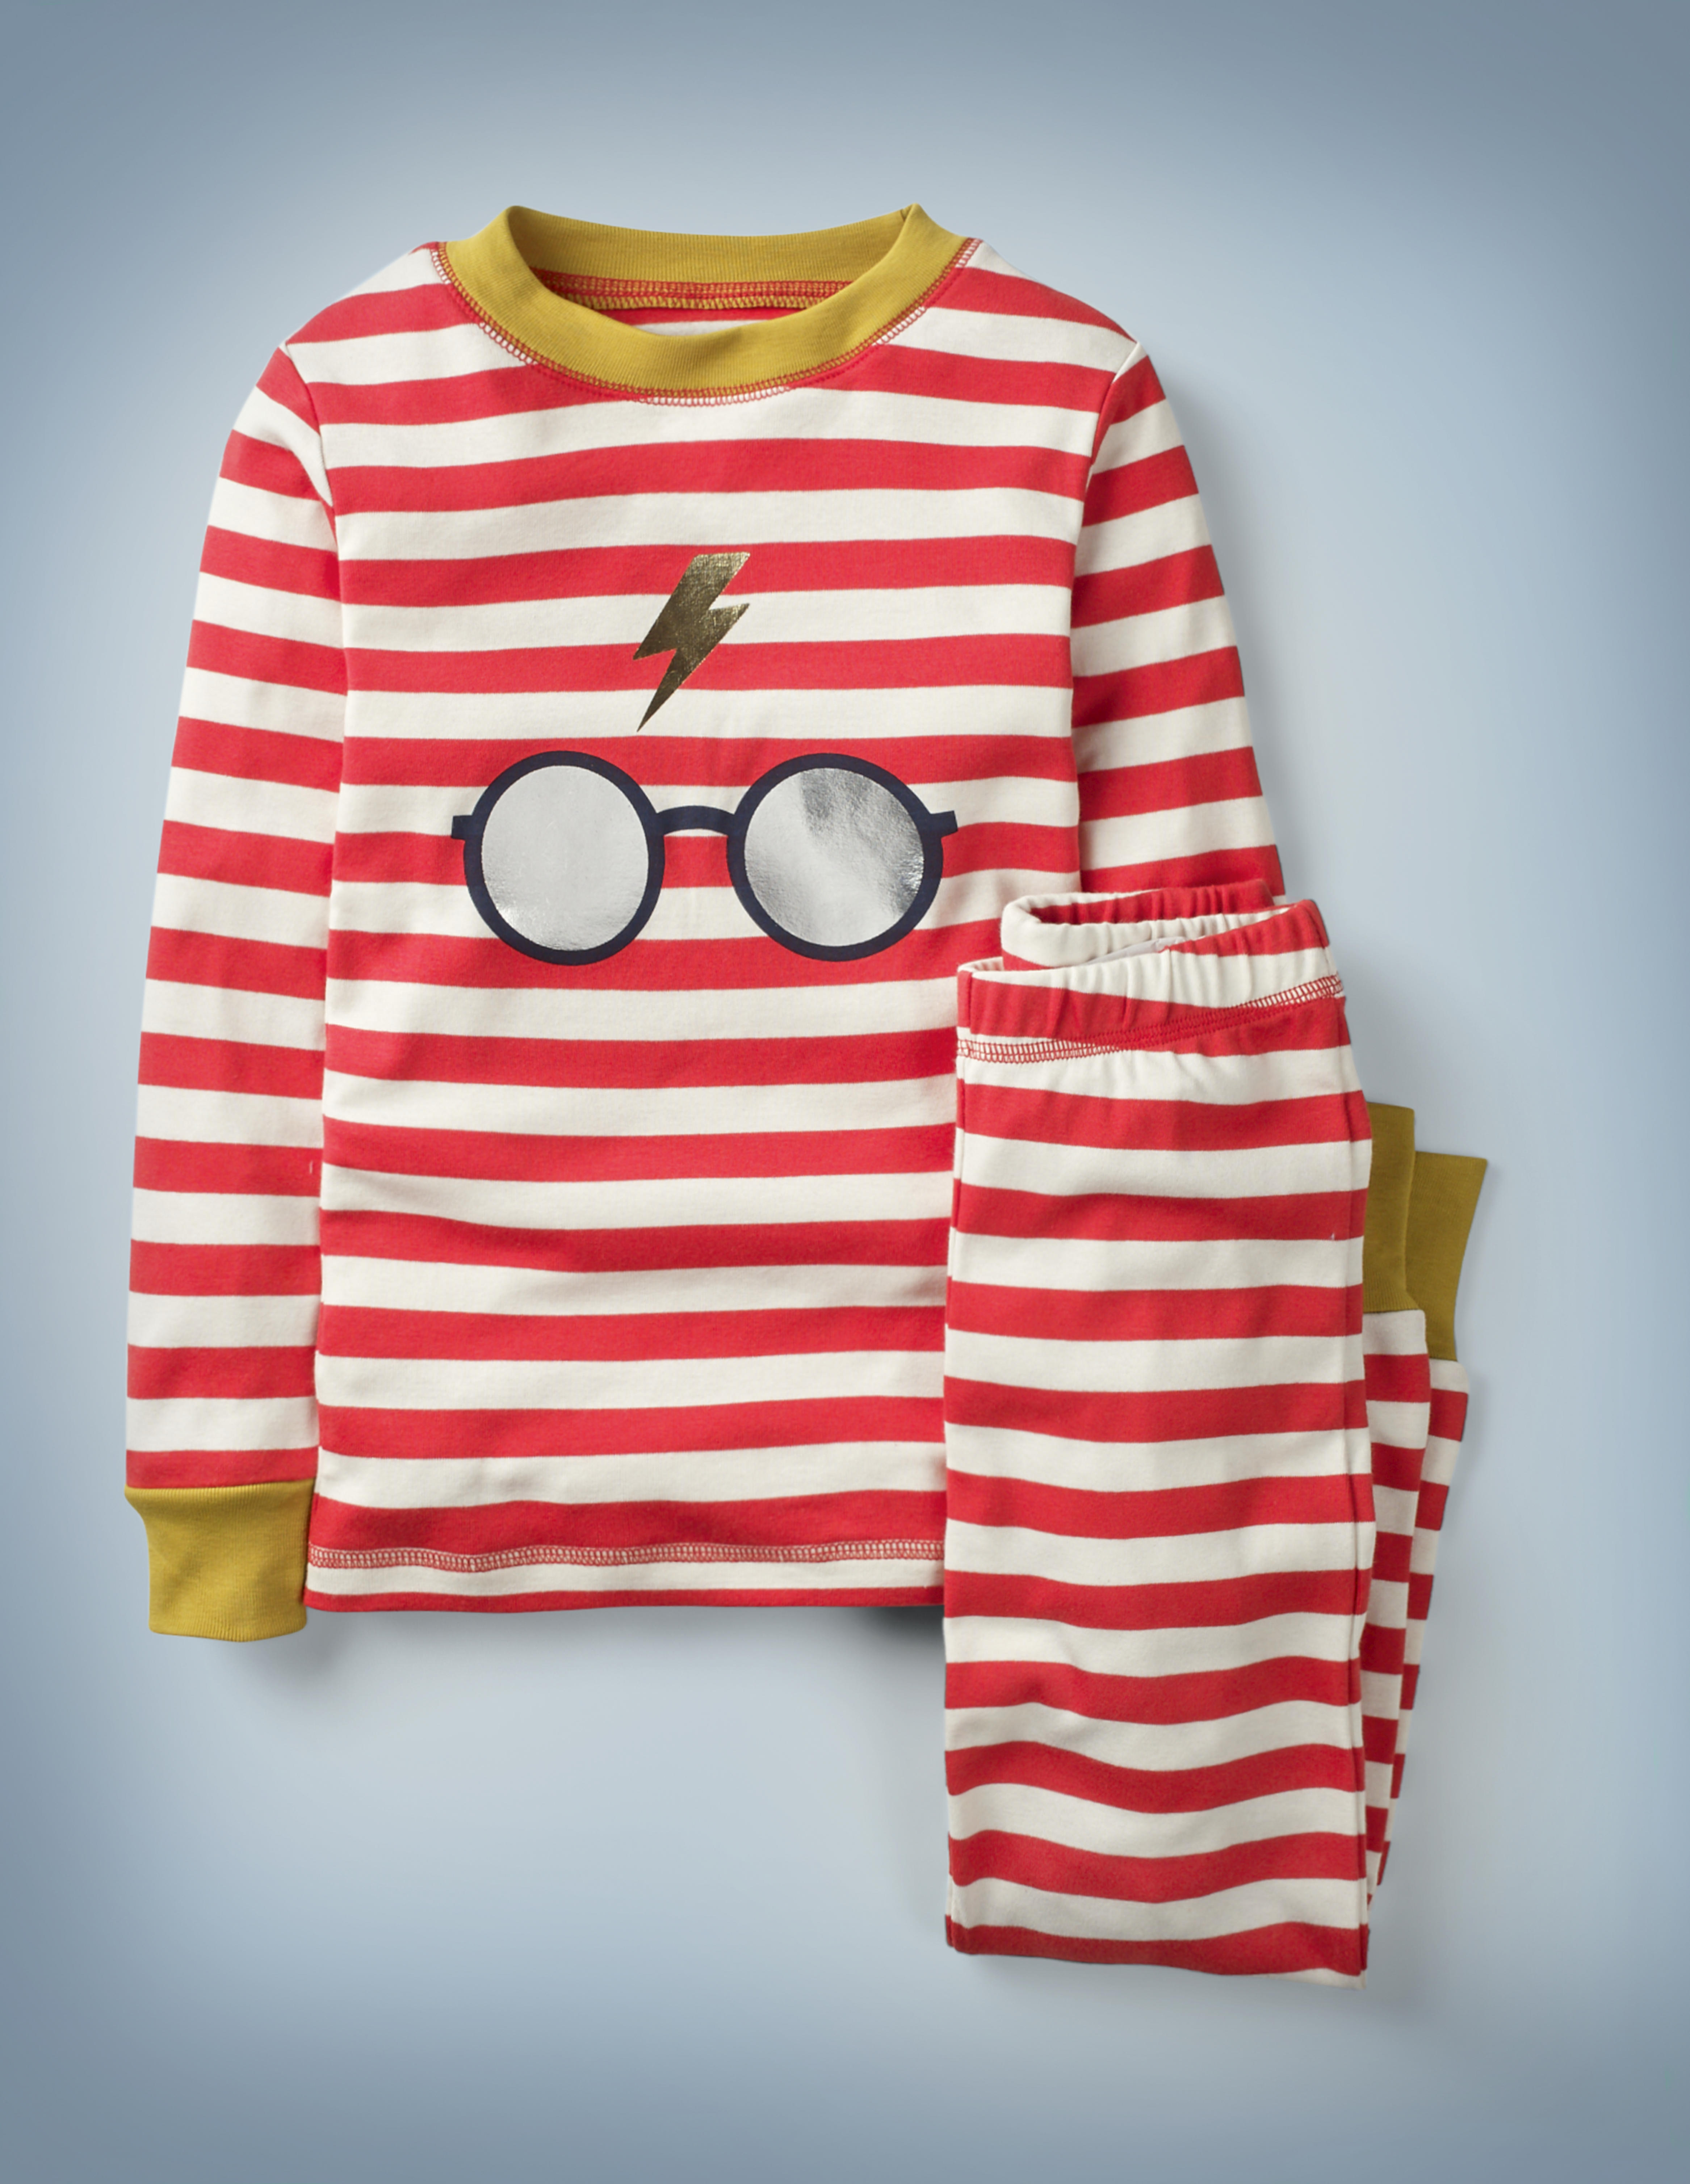 The Mini Boden Harry Potter Long John Pyjamas in red feature all-over red-and-white stripes with gold collar and cuffs, as well as a large central design of Harry Potter's glasses and lightning bolt scar. The top-and-bottom set retails at £24.